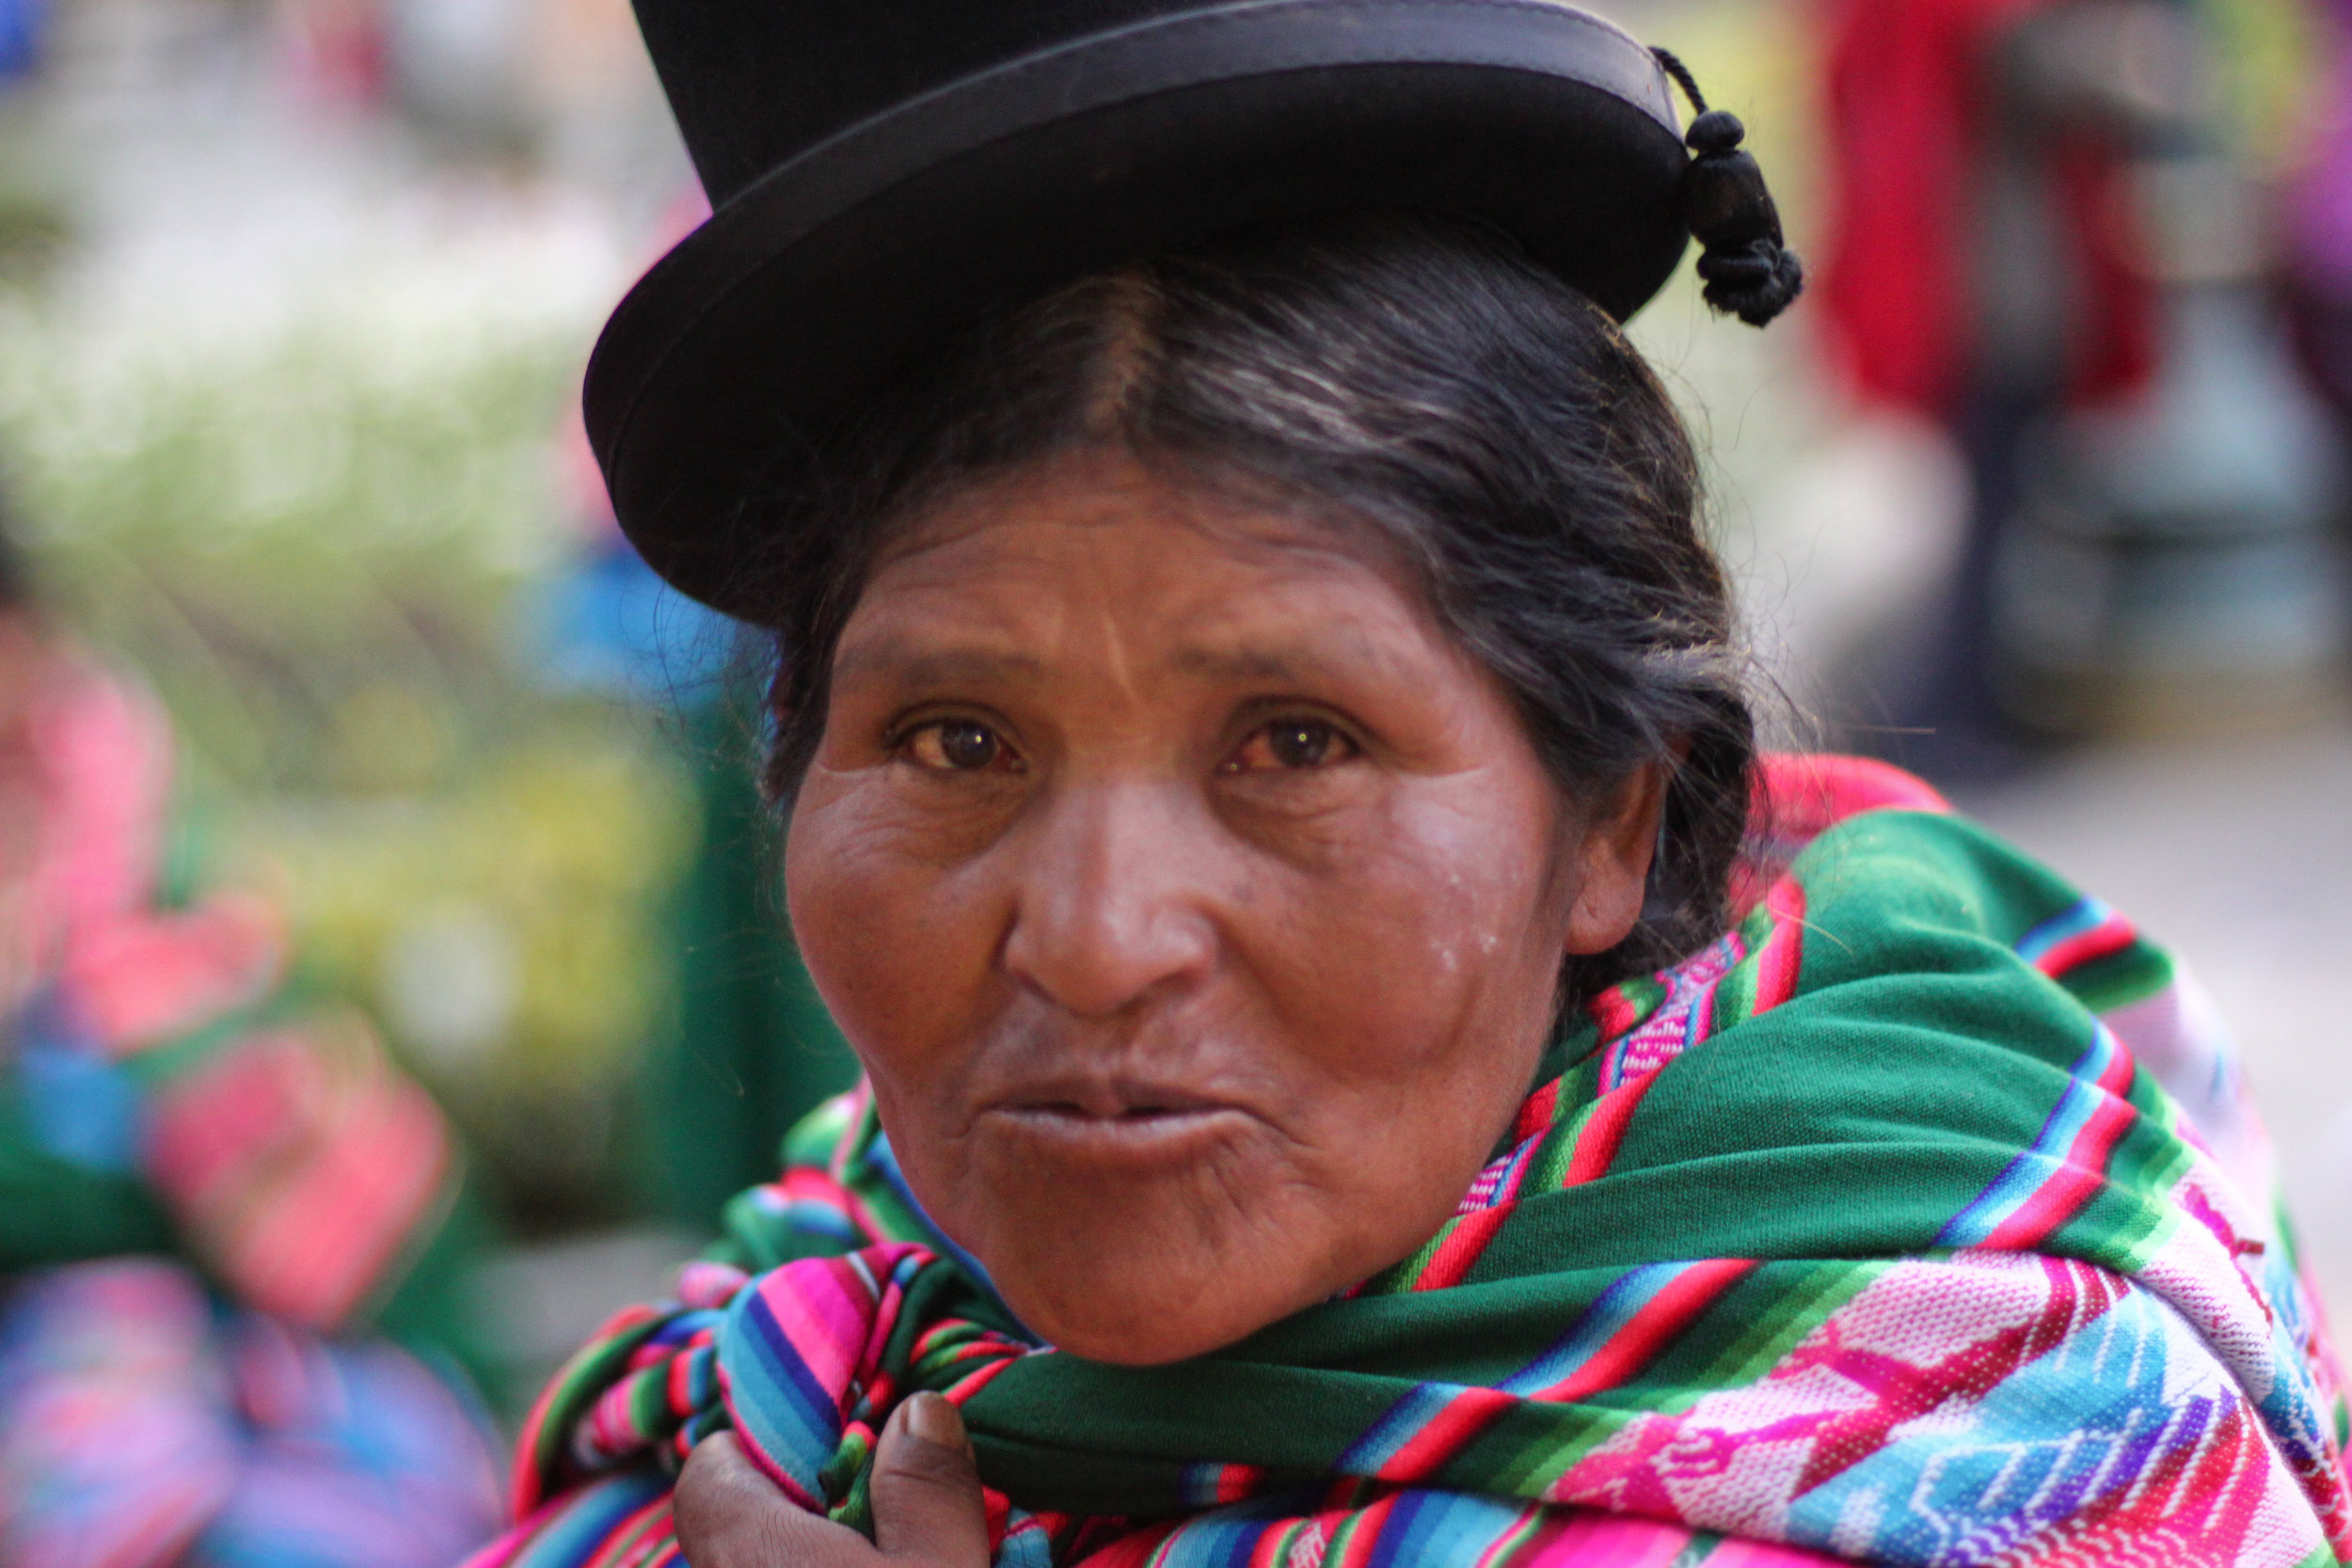 A candid portrait of a traditionally dressed Bolivian woman.